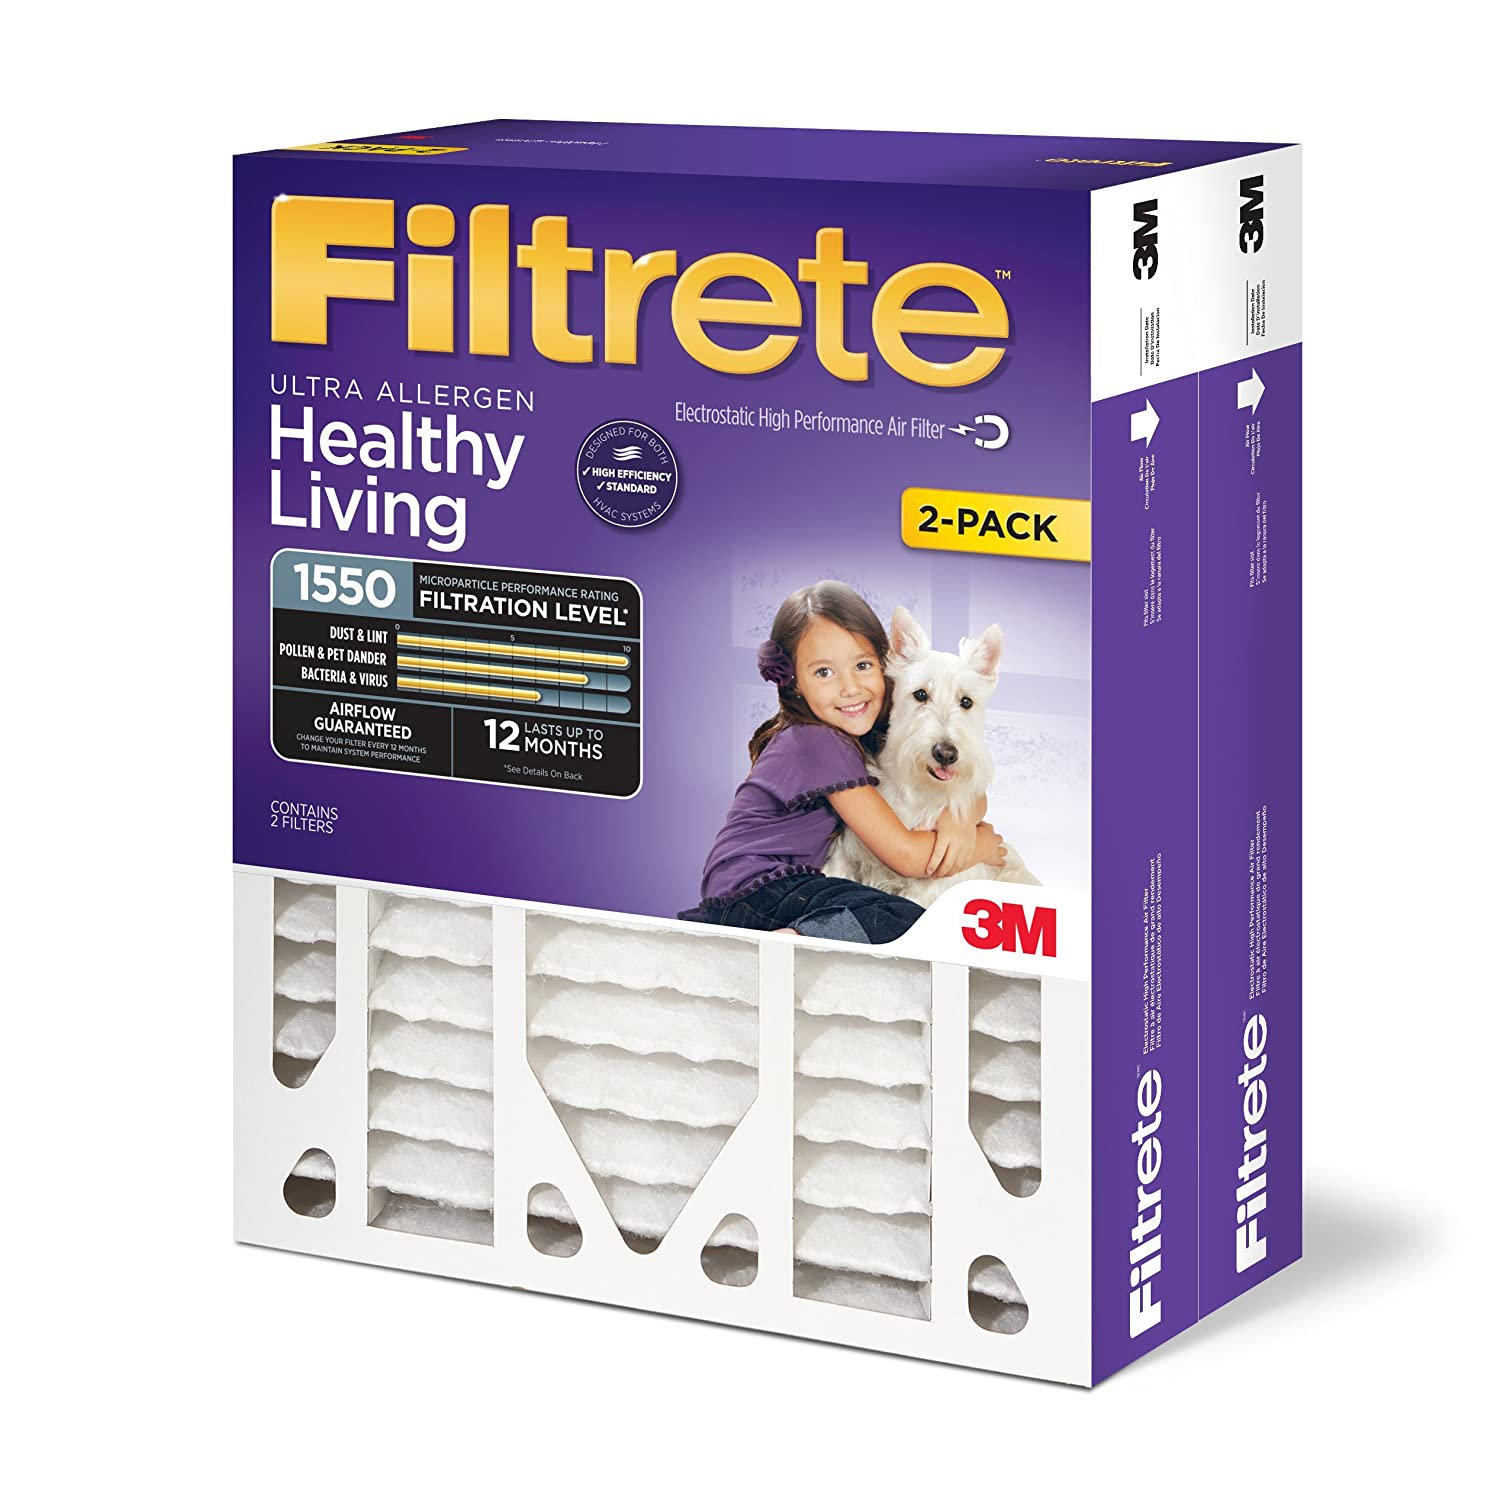 Filtrete MPR 1550 16 x 25 x 4 (4-3/8 Actual Depth) Healthy Living Ultra  Allergen Deep Pleat HVAC Air Filter, Delivers Cleaner Air Throughout Your  Home, ...